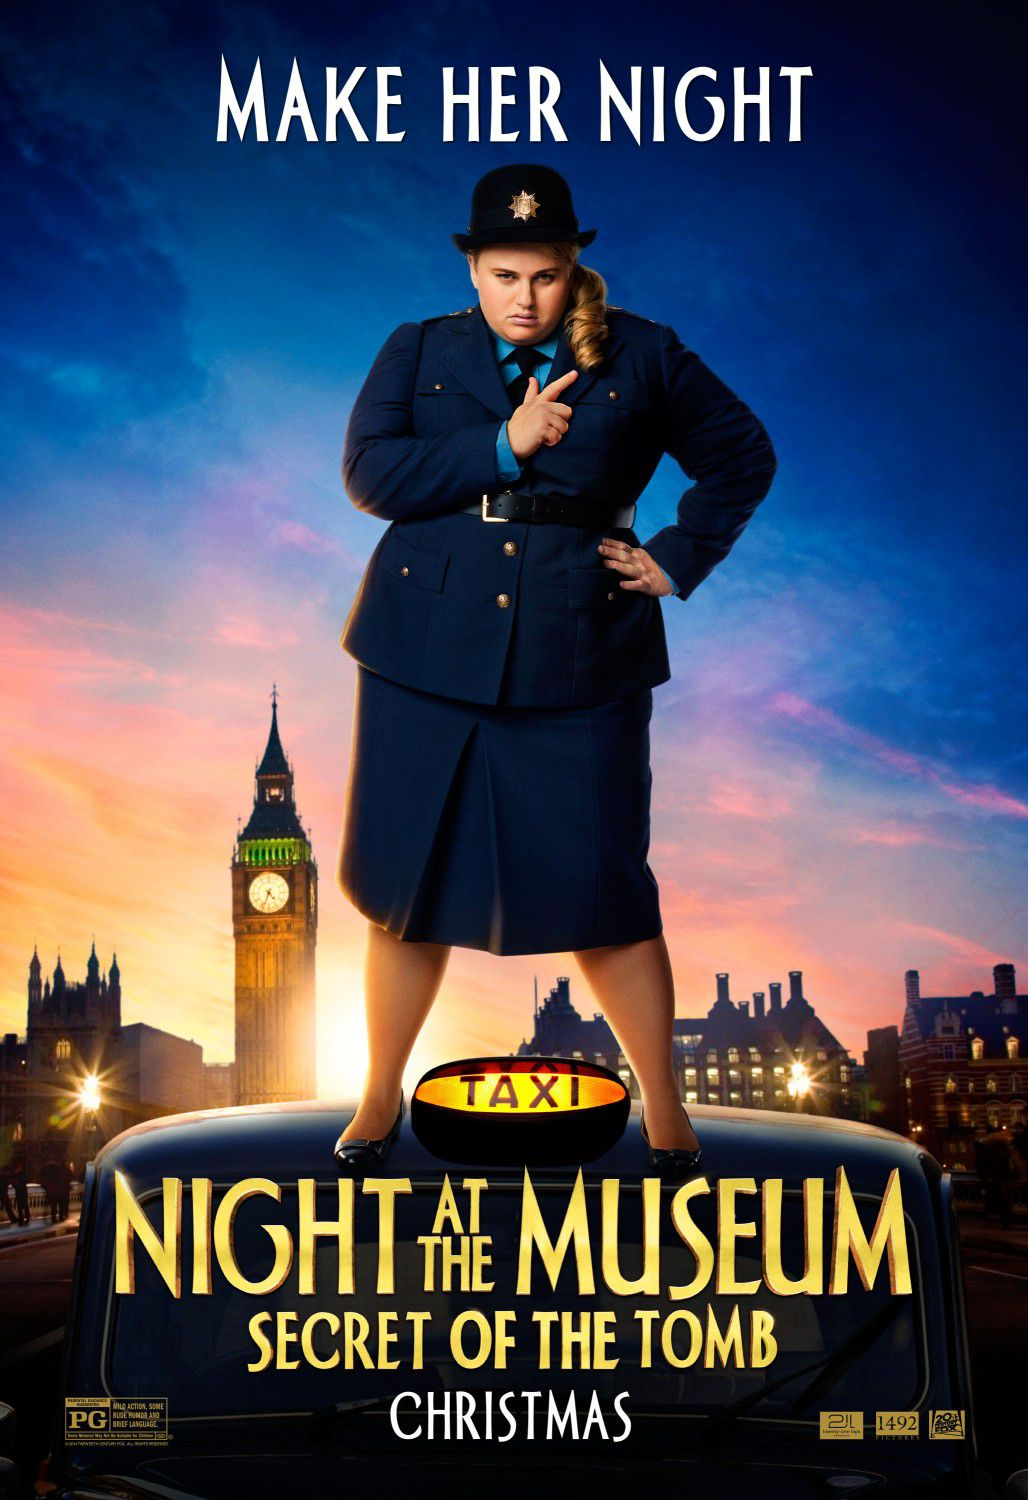 Una Notte al Museo 3 - Night at the Museum 3 - Secret of the Tomb - poster - make her night - Tilly (Rebel Wilson)